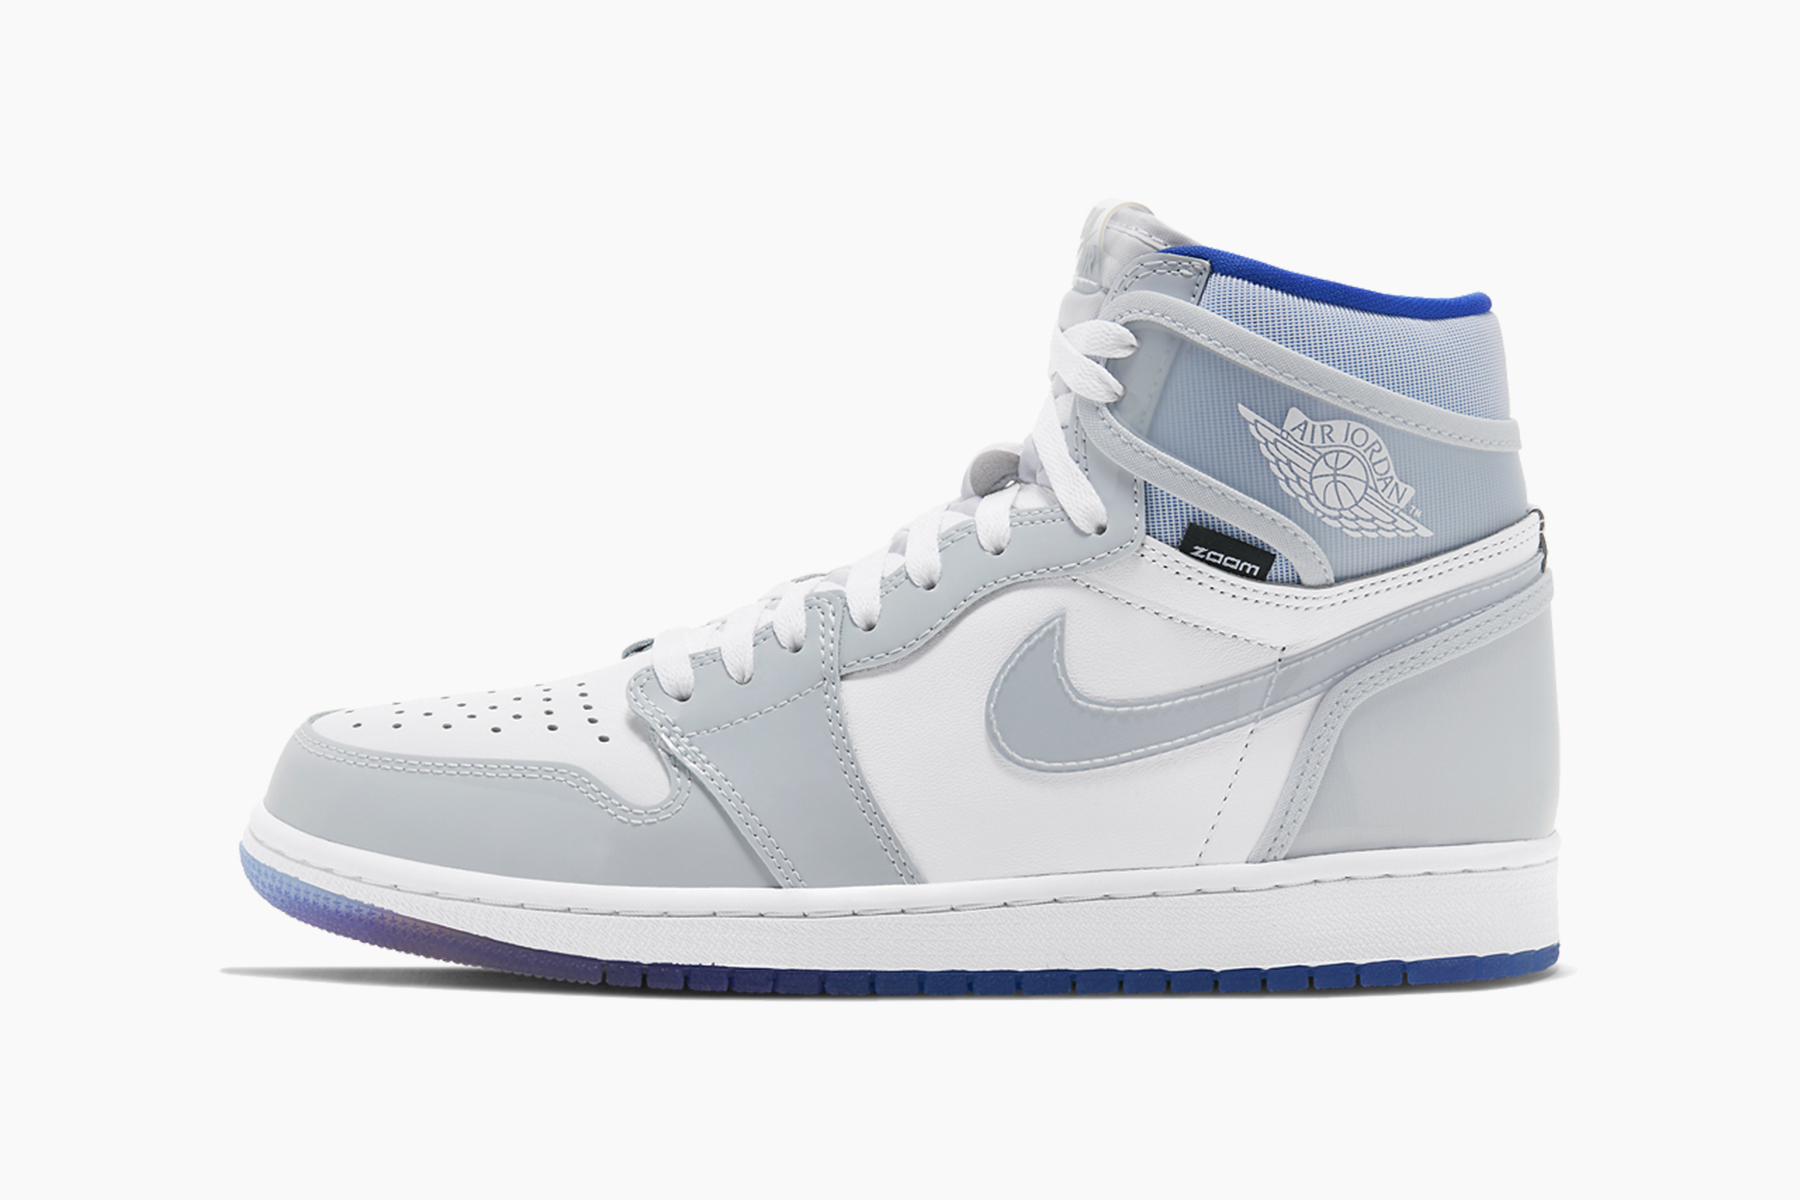 Air Jordan 1 High Zoom Racer Blue Release Date Hypebeast